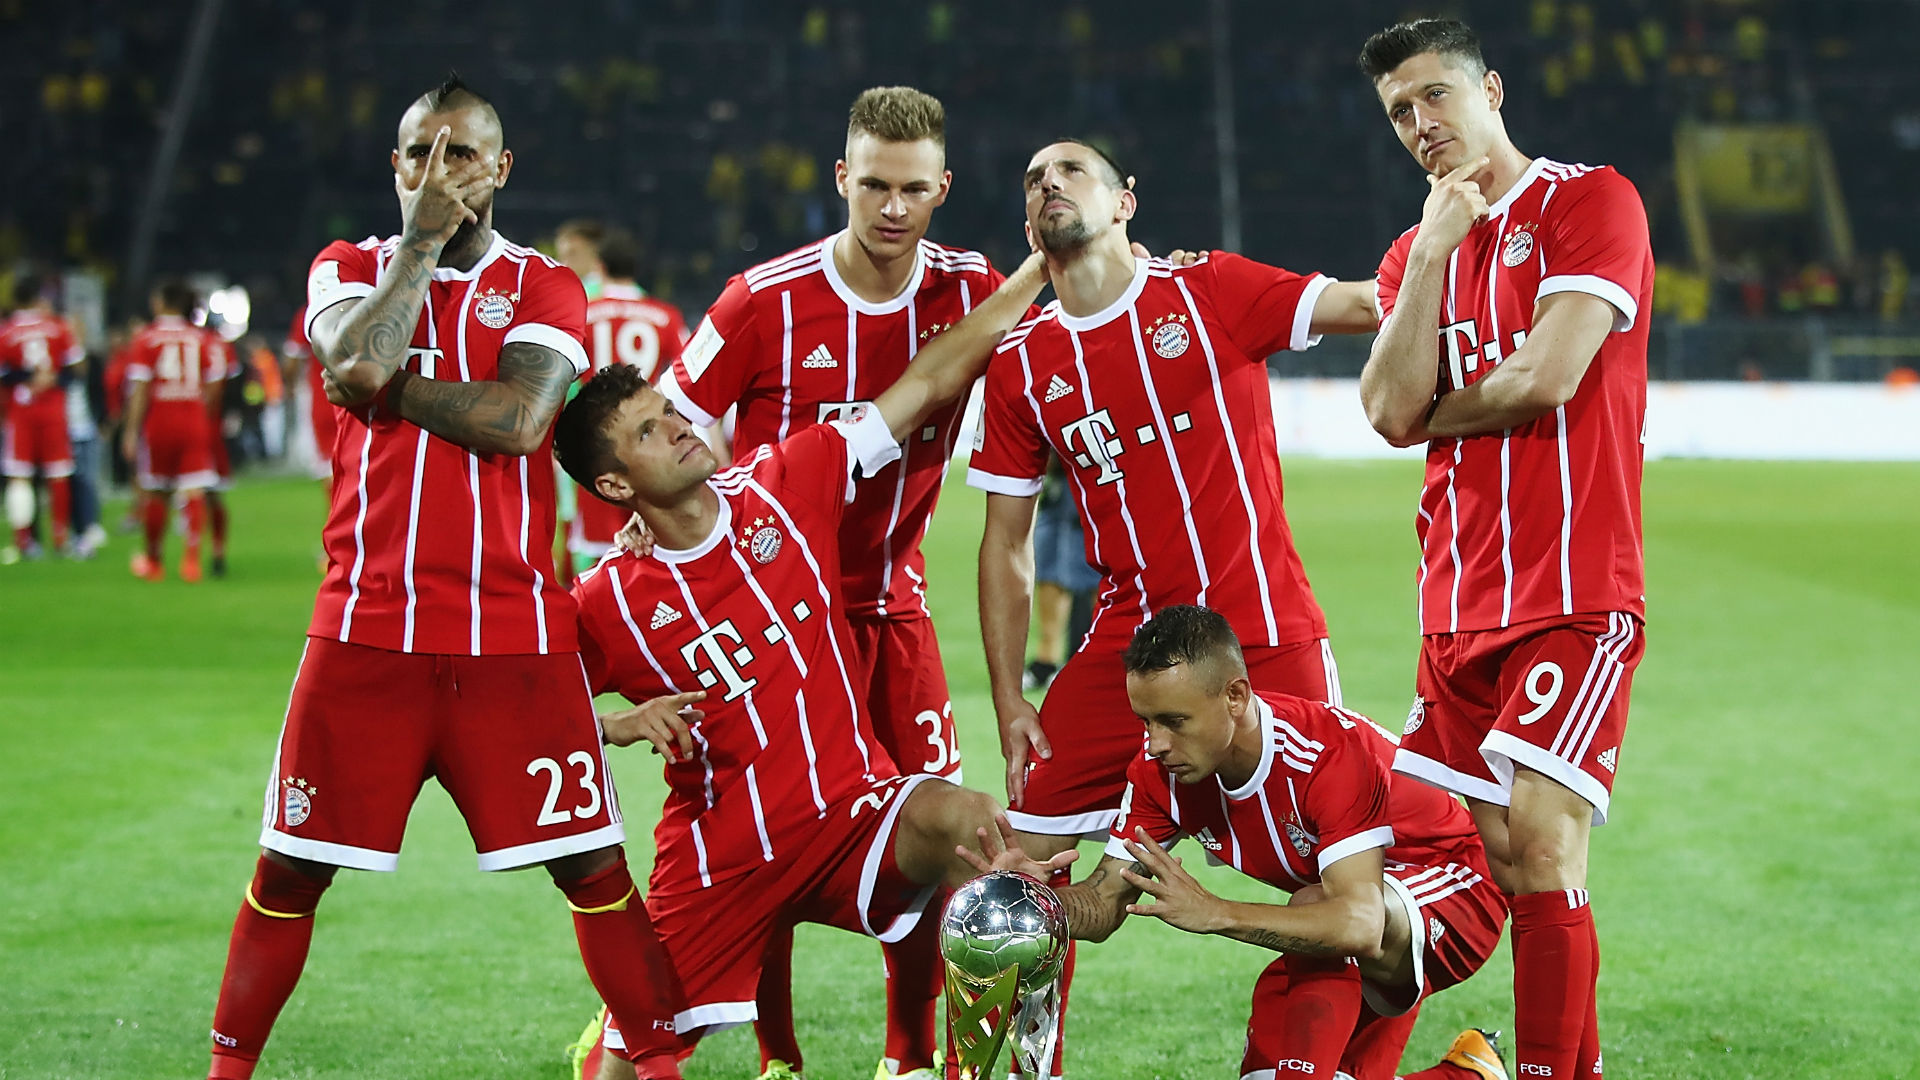 Super League Bayern